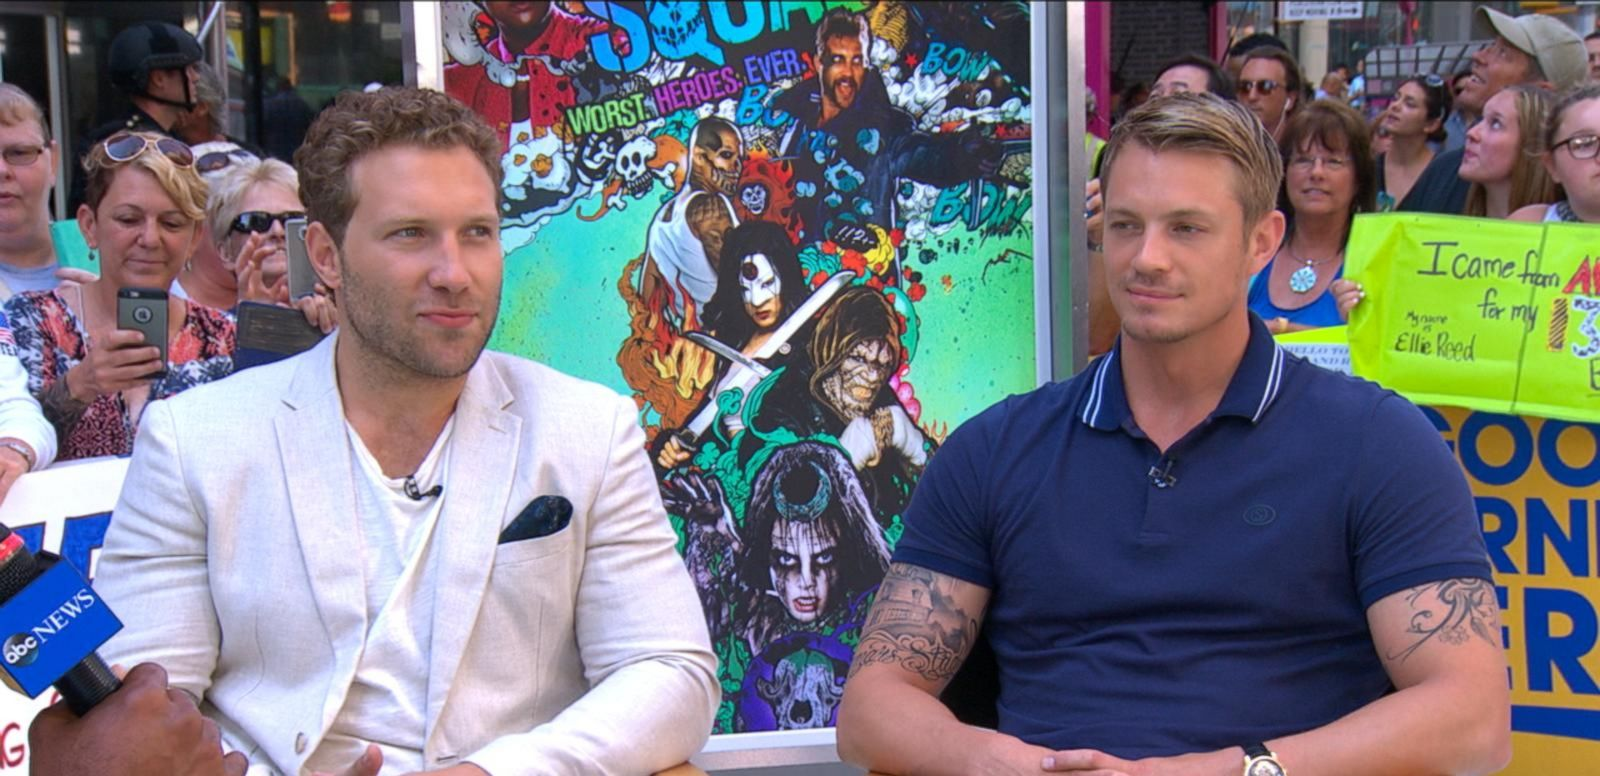 VIDEO: Joel Kinnaman, Jai Courtney Talk 'Suicide Squad' on 'GMA'